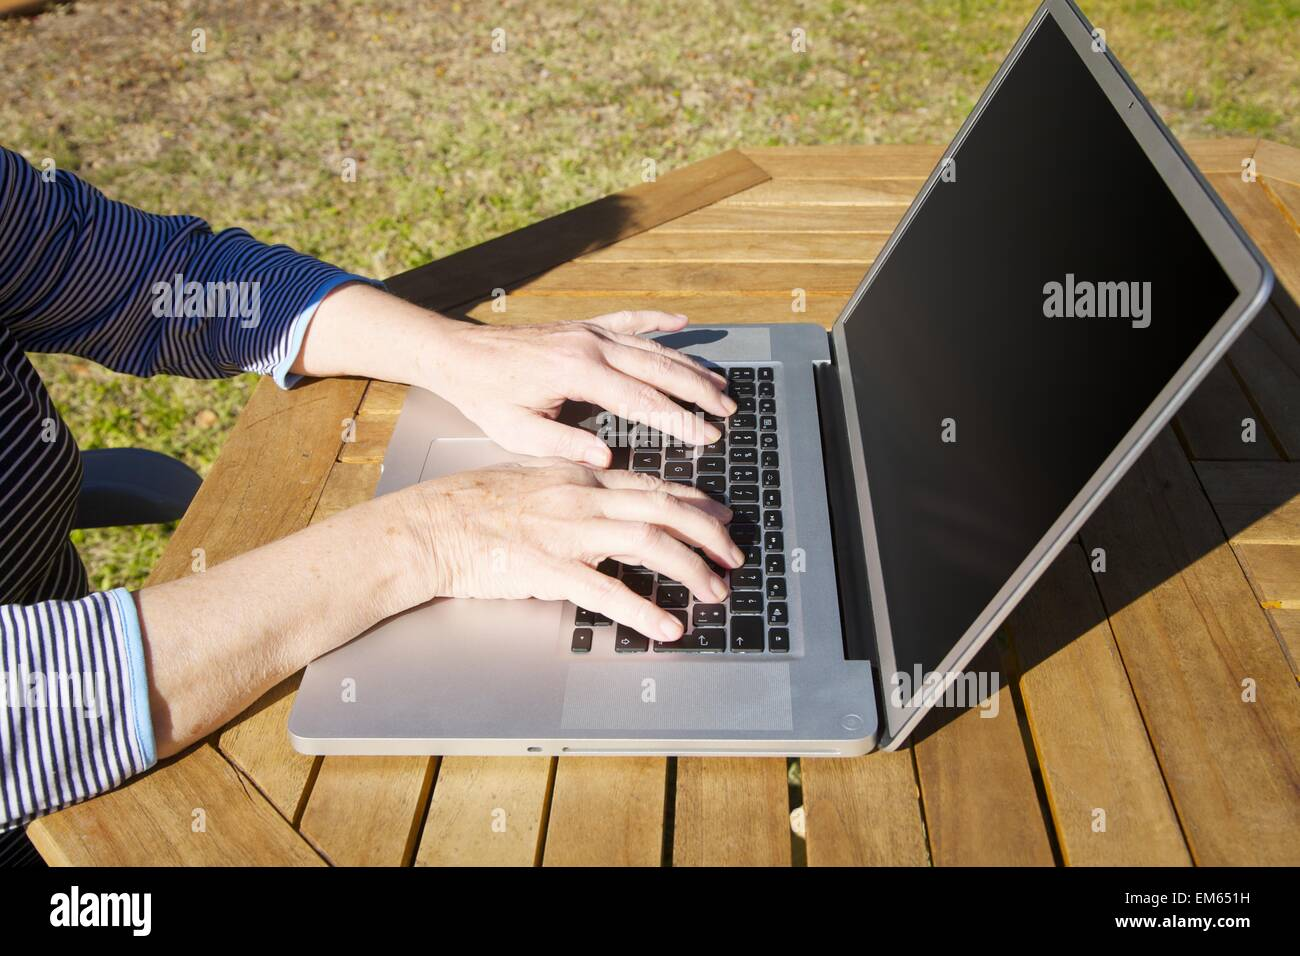 hands of old woman typing on laptop - Stock Image